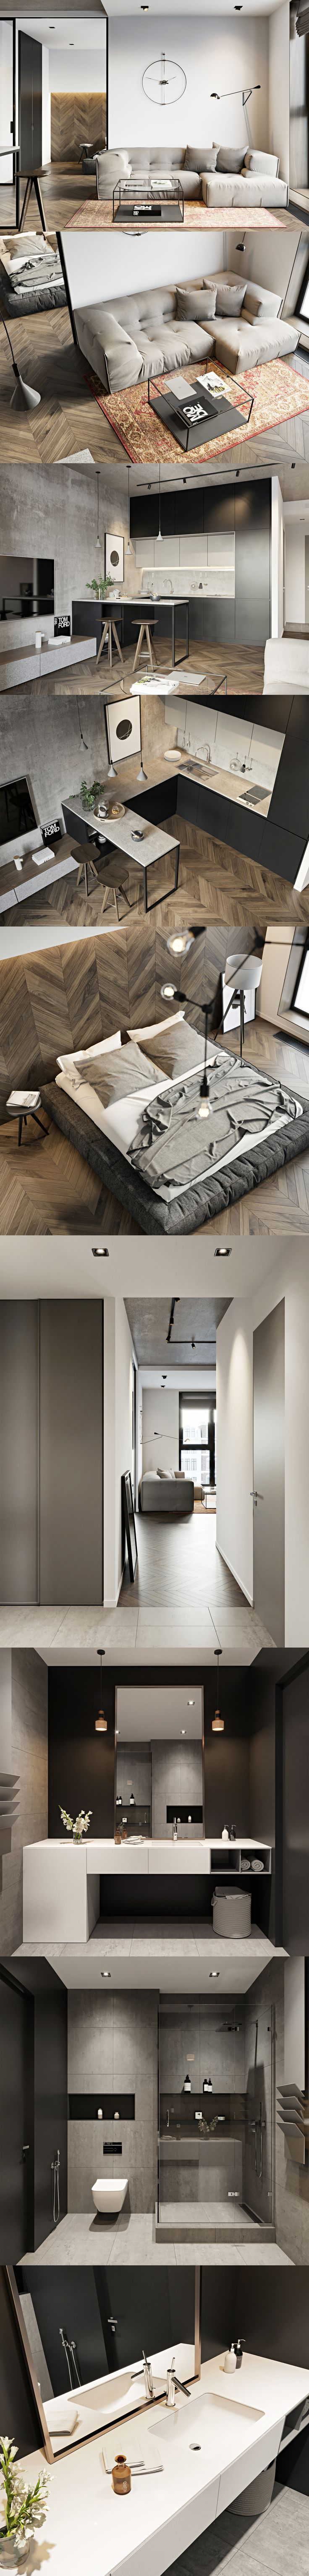 Perfectly formed one bed apartment. Ceiling to floor storage in kitchen and built in table allows for sight lines through to all rooms including bedroom.